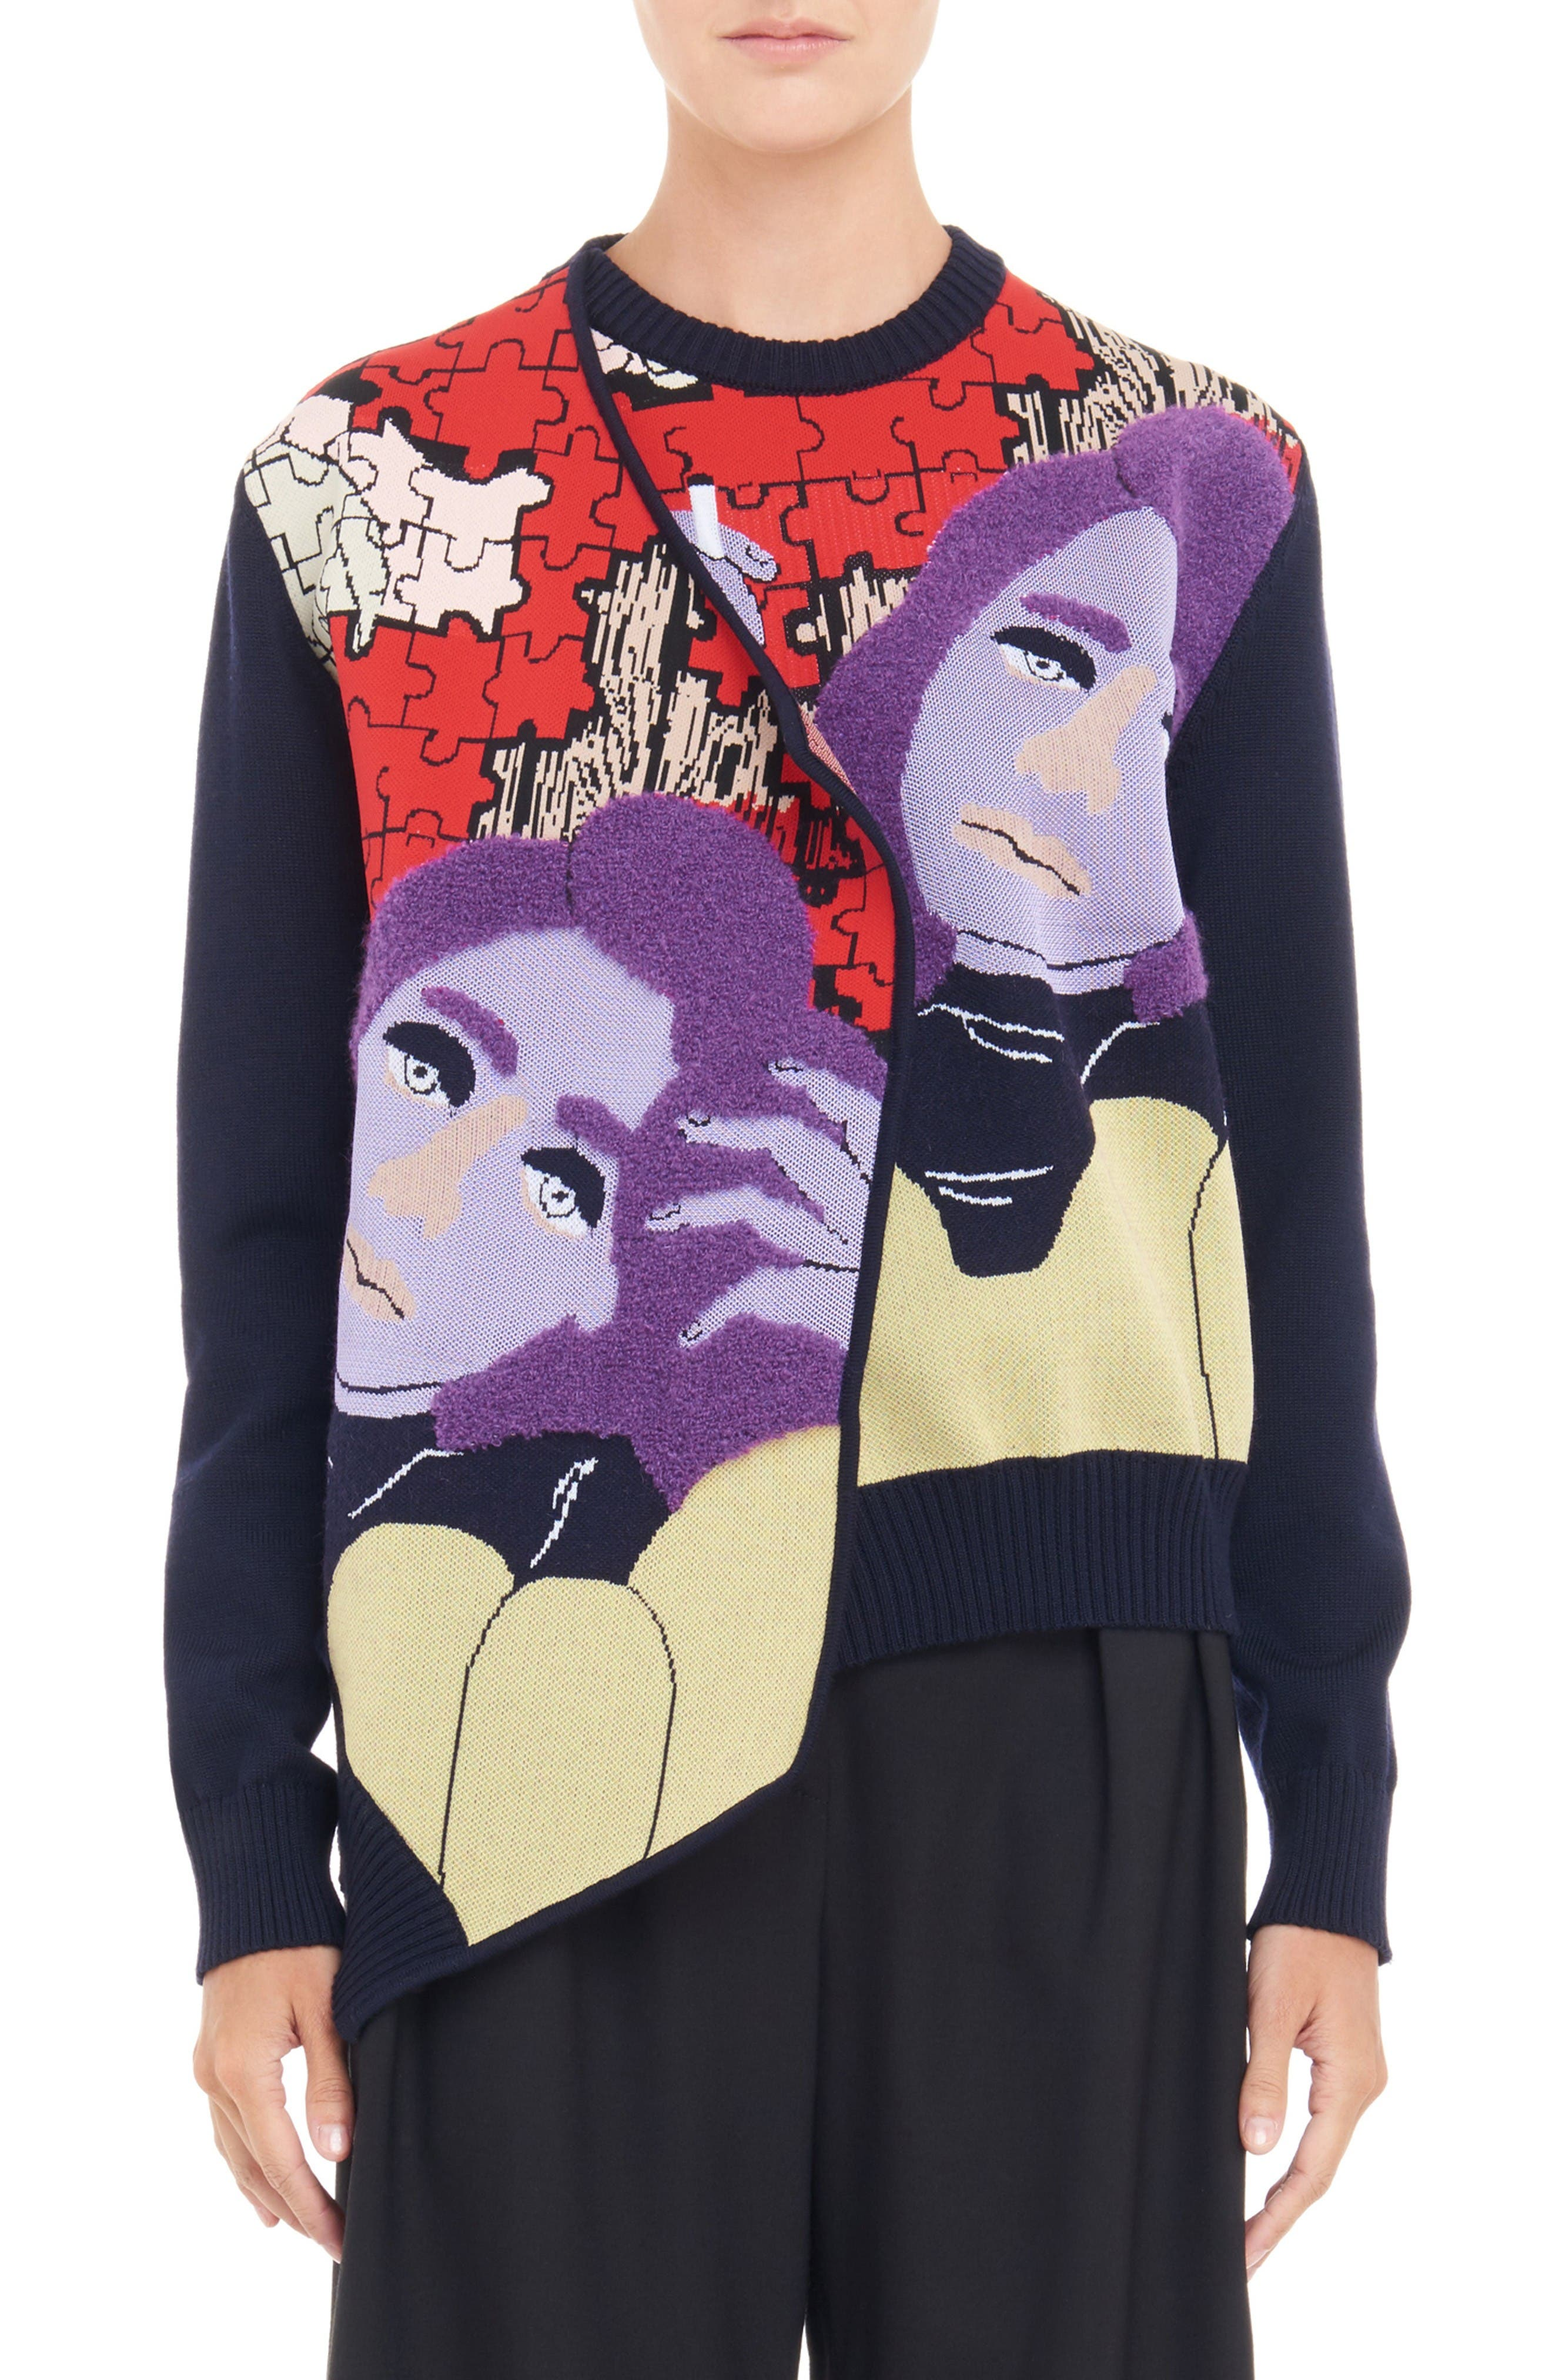 J.W.ANDERSON Graphic Puzzle Knit Cardigan